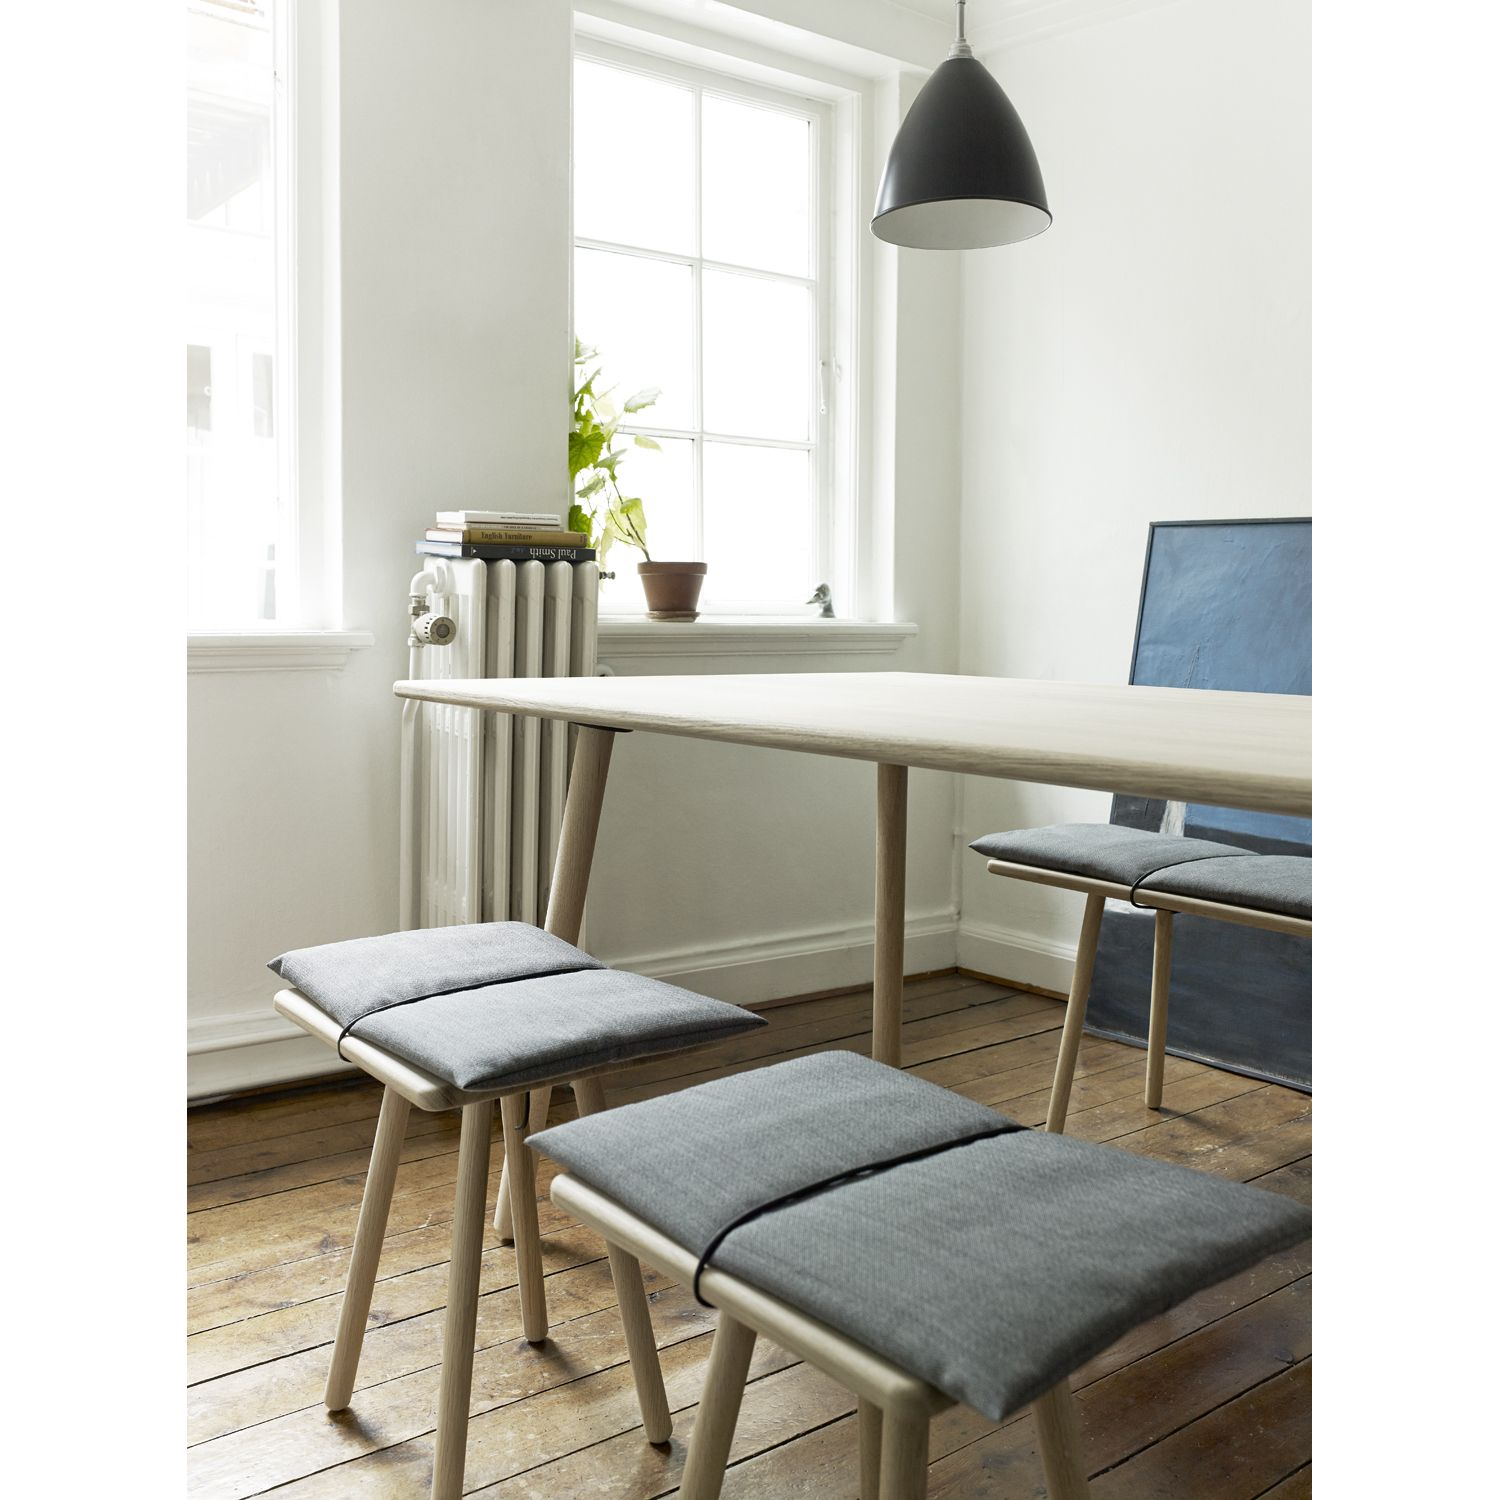 Georg table - Skagerak #interior #design #scandinavian